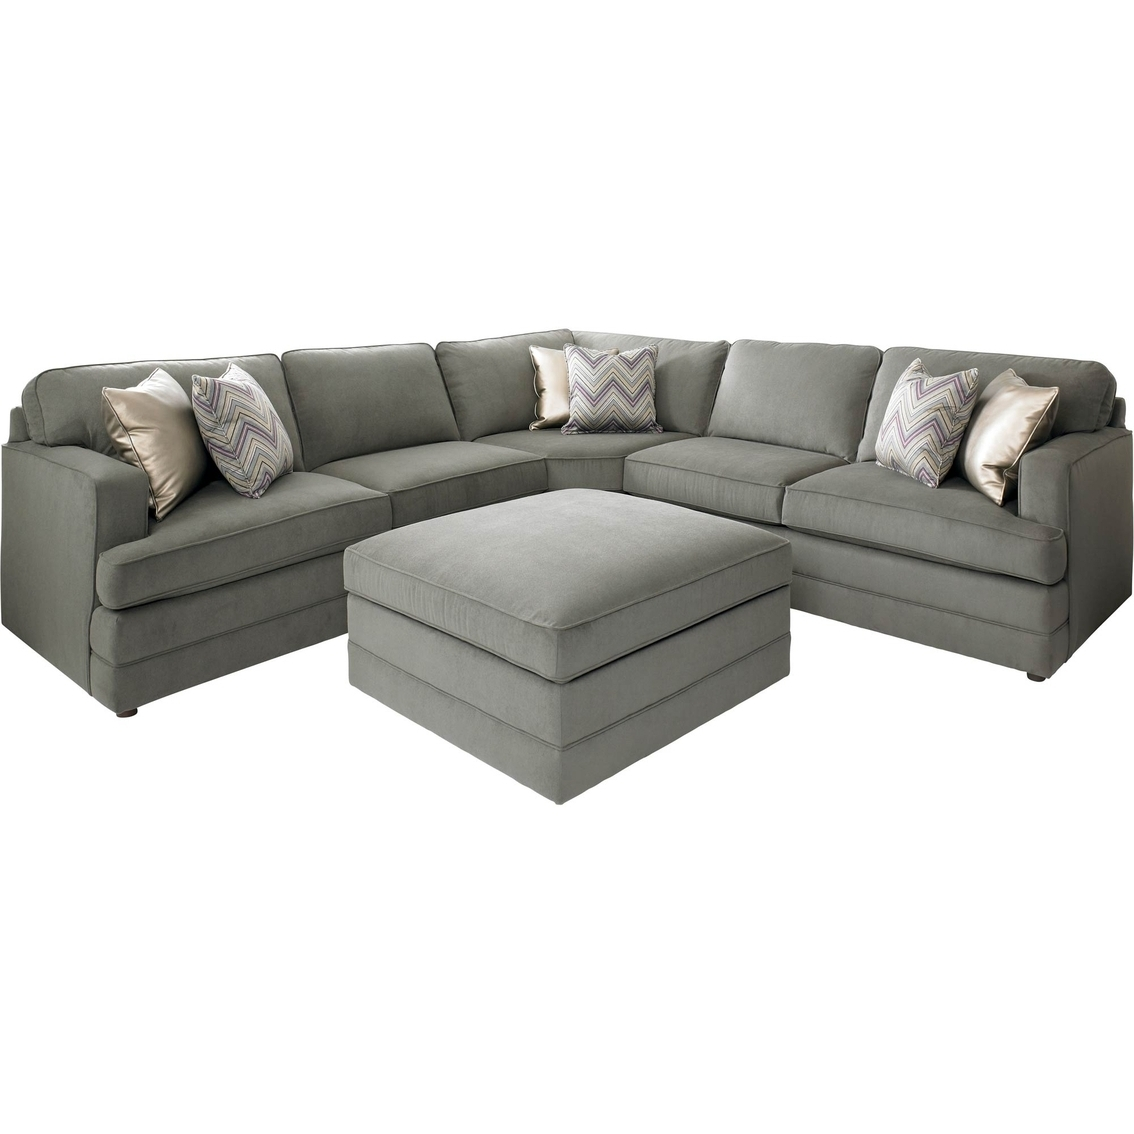 High Point Nc Sectional Sofas Throughout Well Known Bassett Dalton L Shaped Sectional Sofa With Ottoman (View 7 of 15)